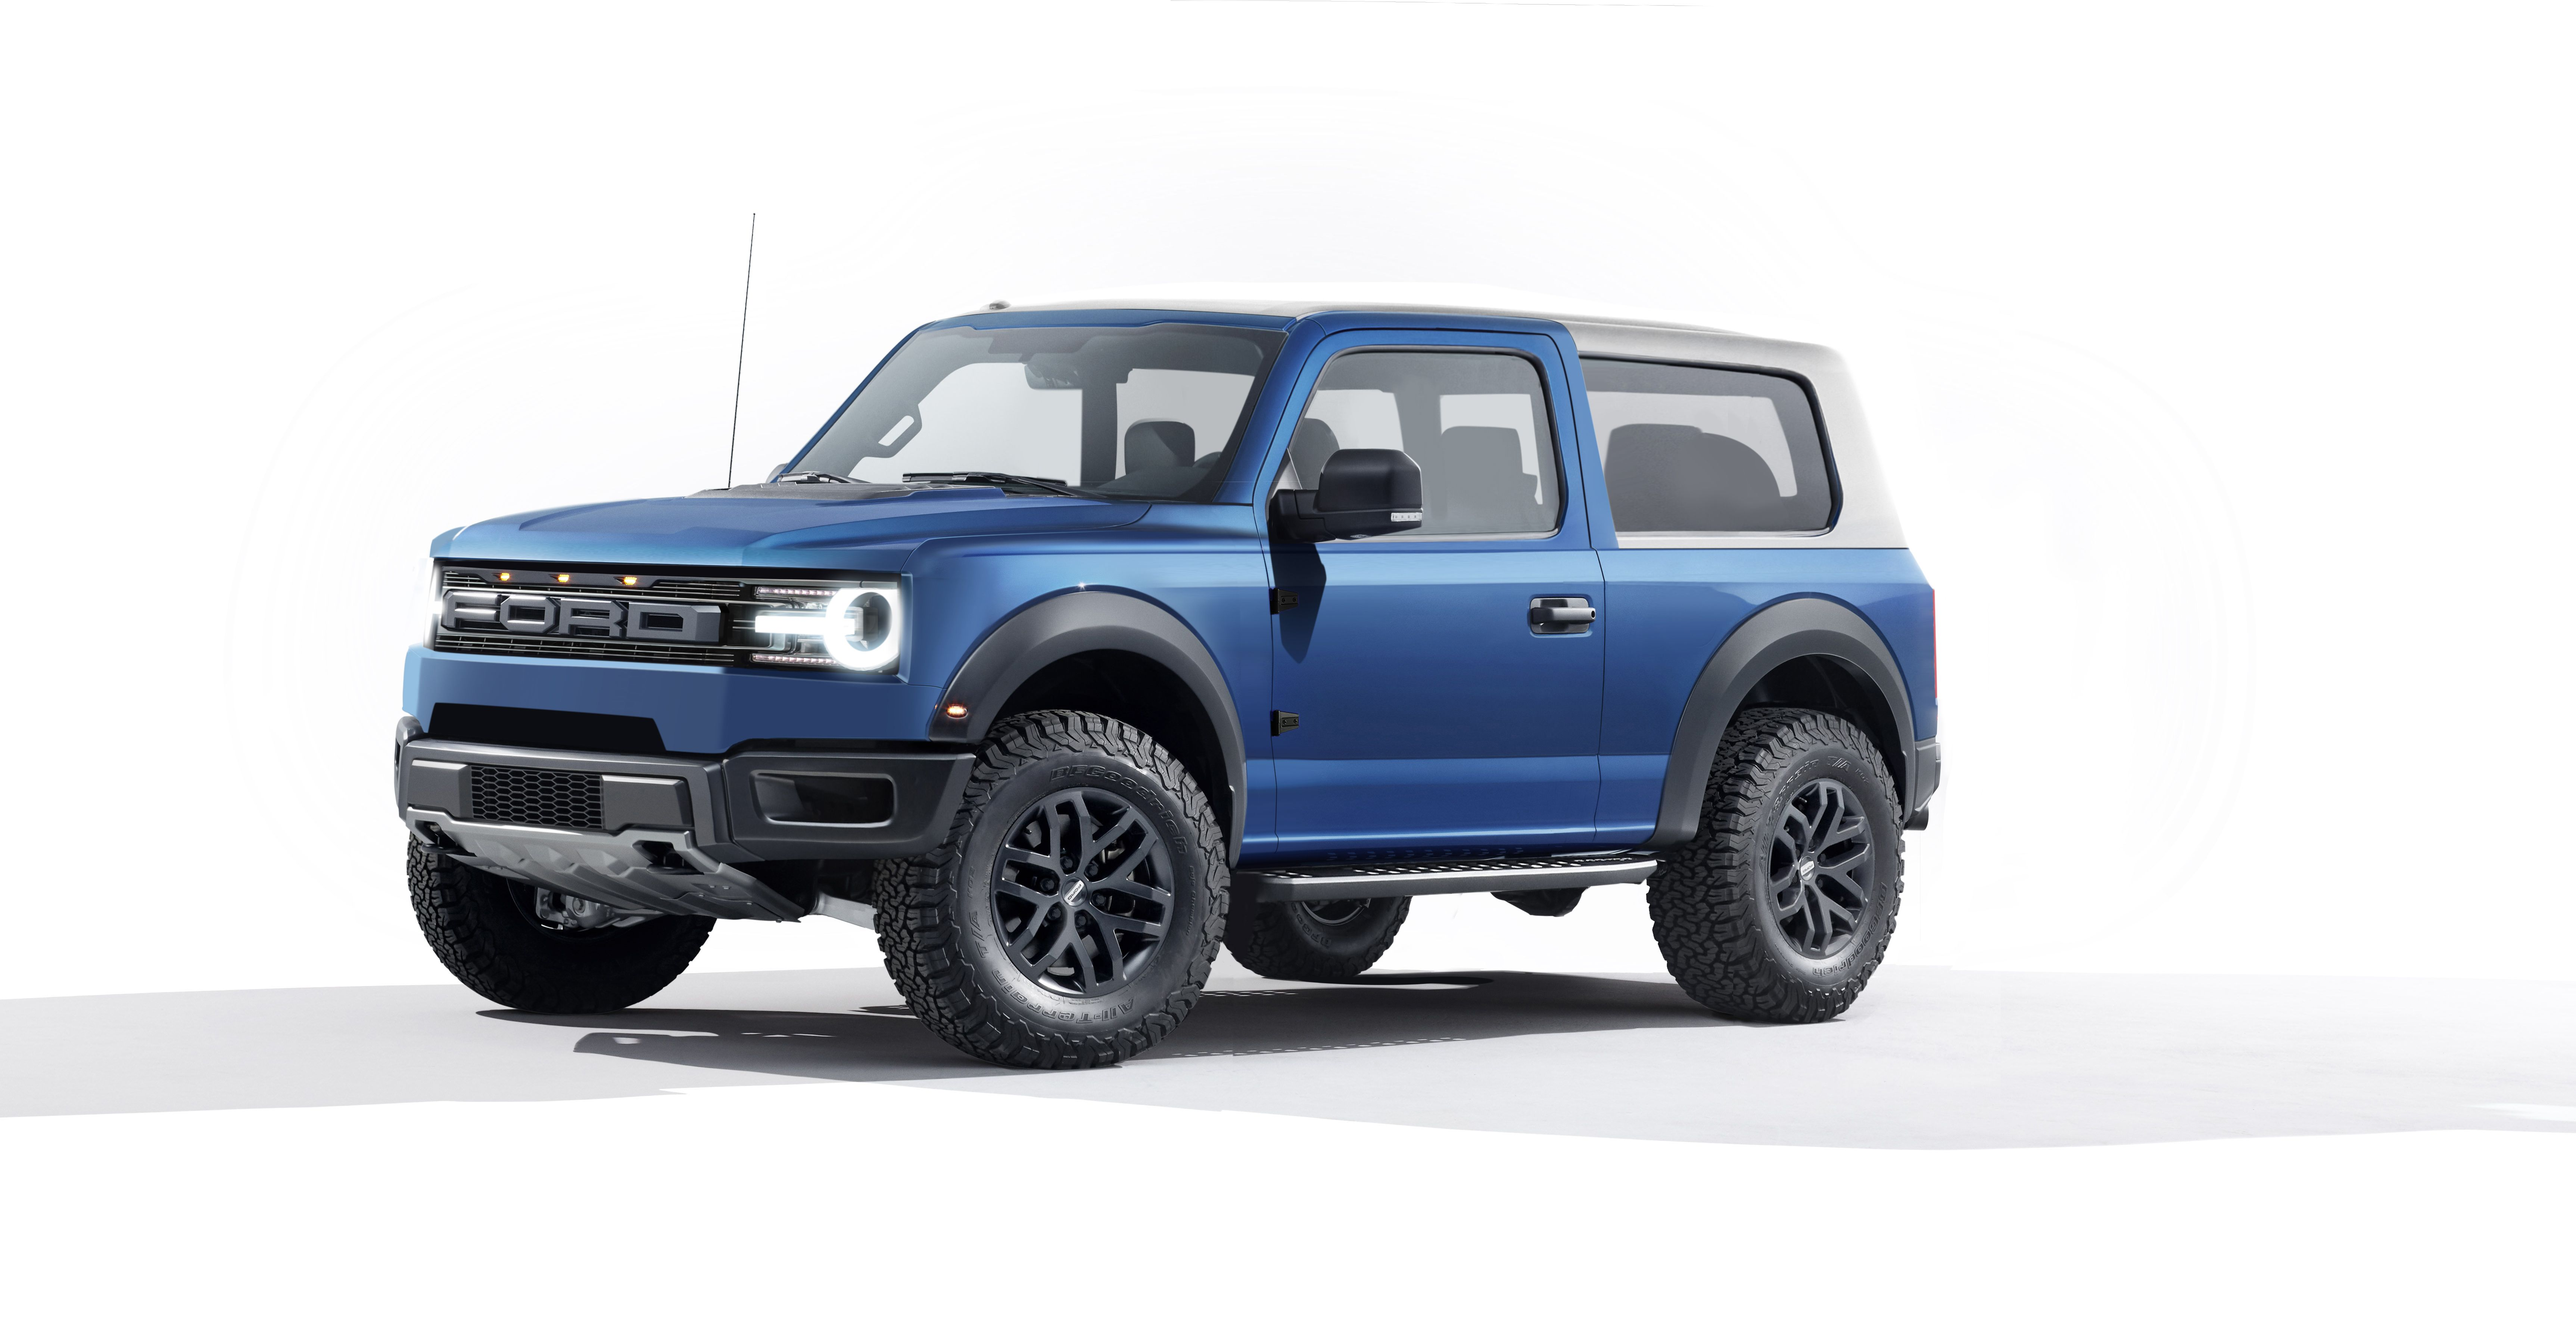 5 Ford Bronco Confirmed: What We Know So Far